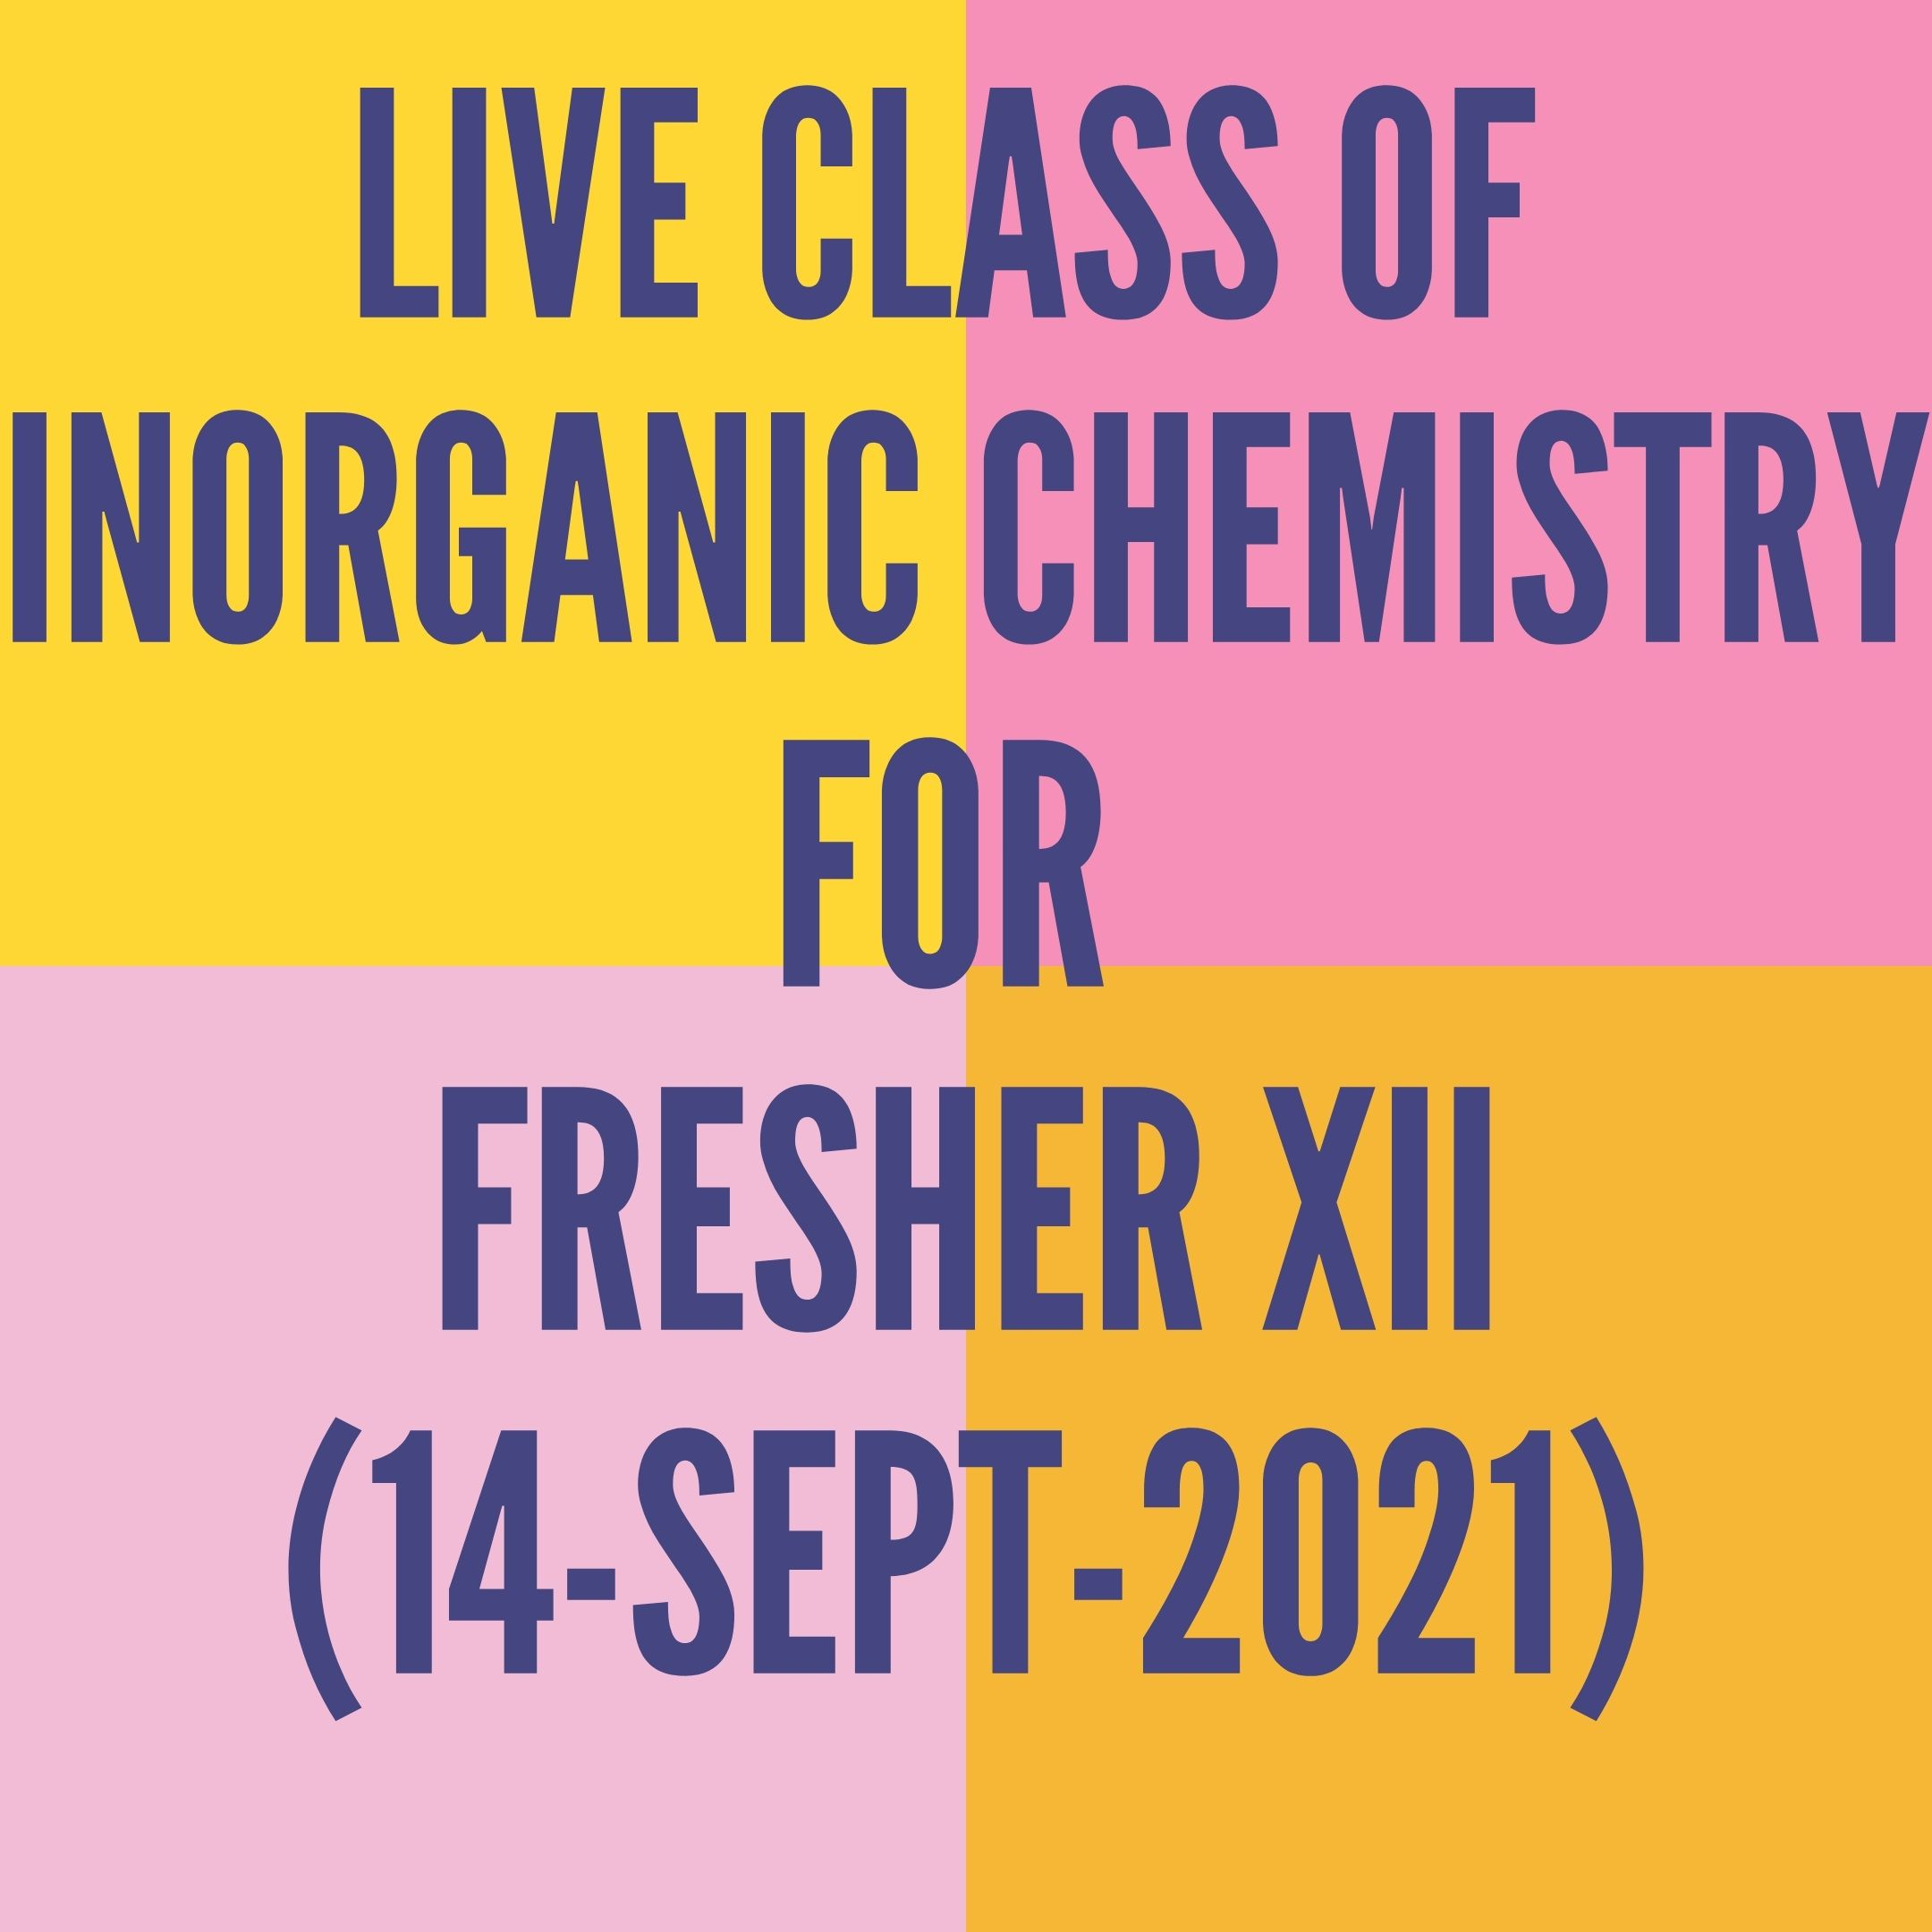 LIVE CLASS OF INORGANIC CHEMISTRY FOR FRESHER XII (14-SEPT-2021) CO-ORDINATION COMPOUND